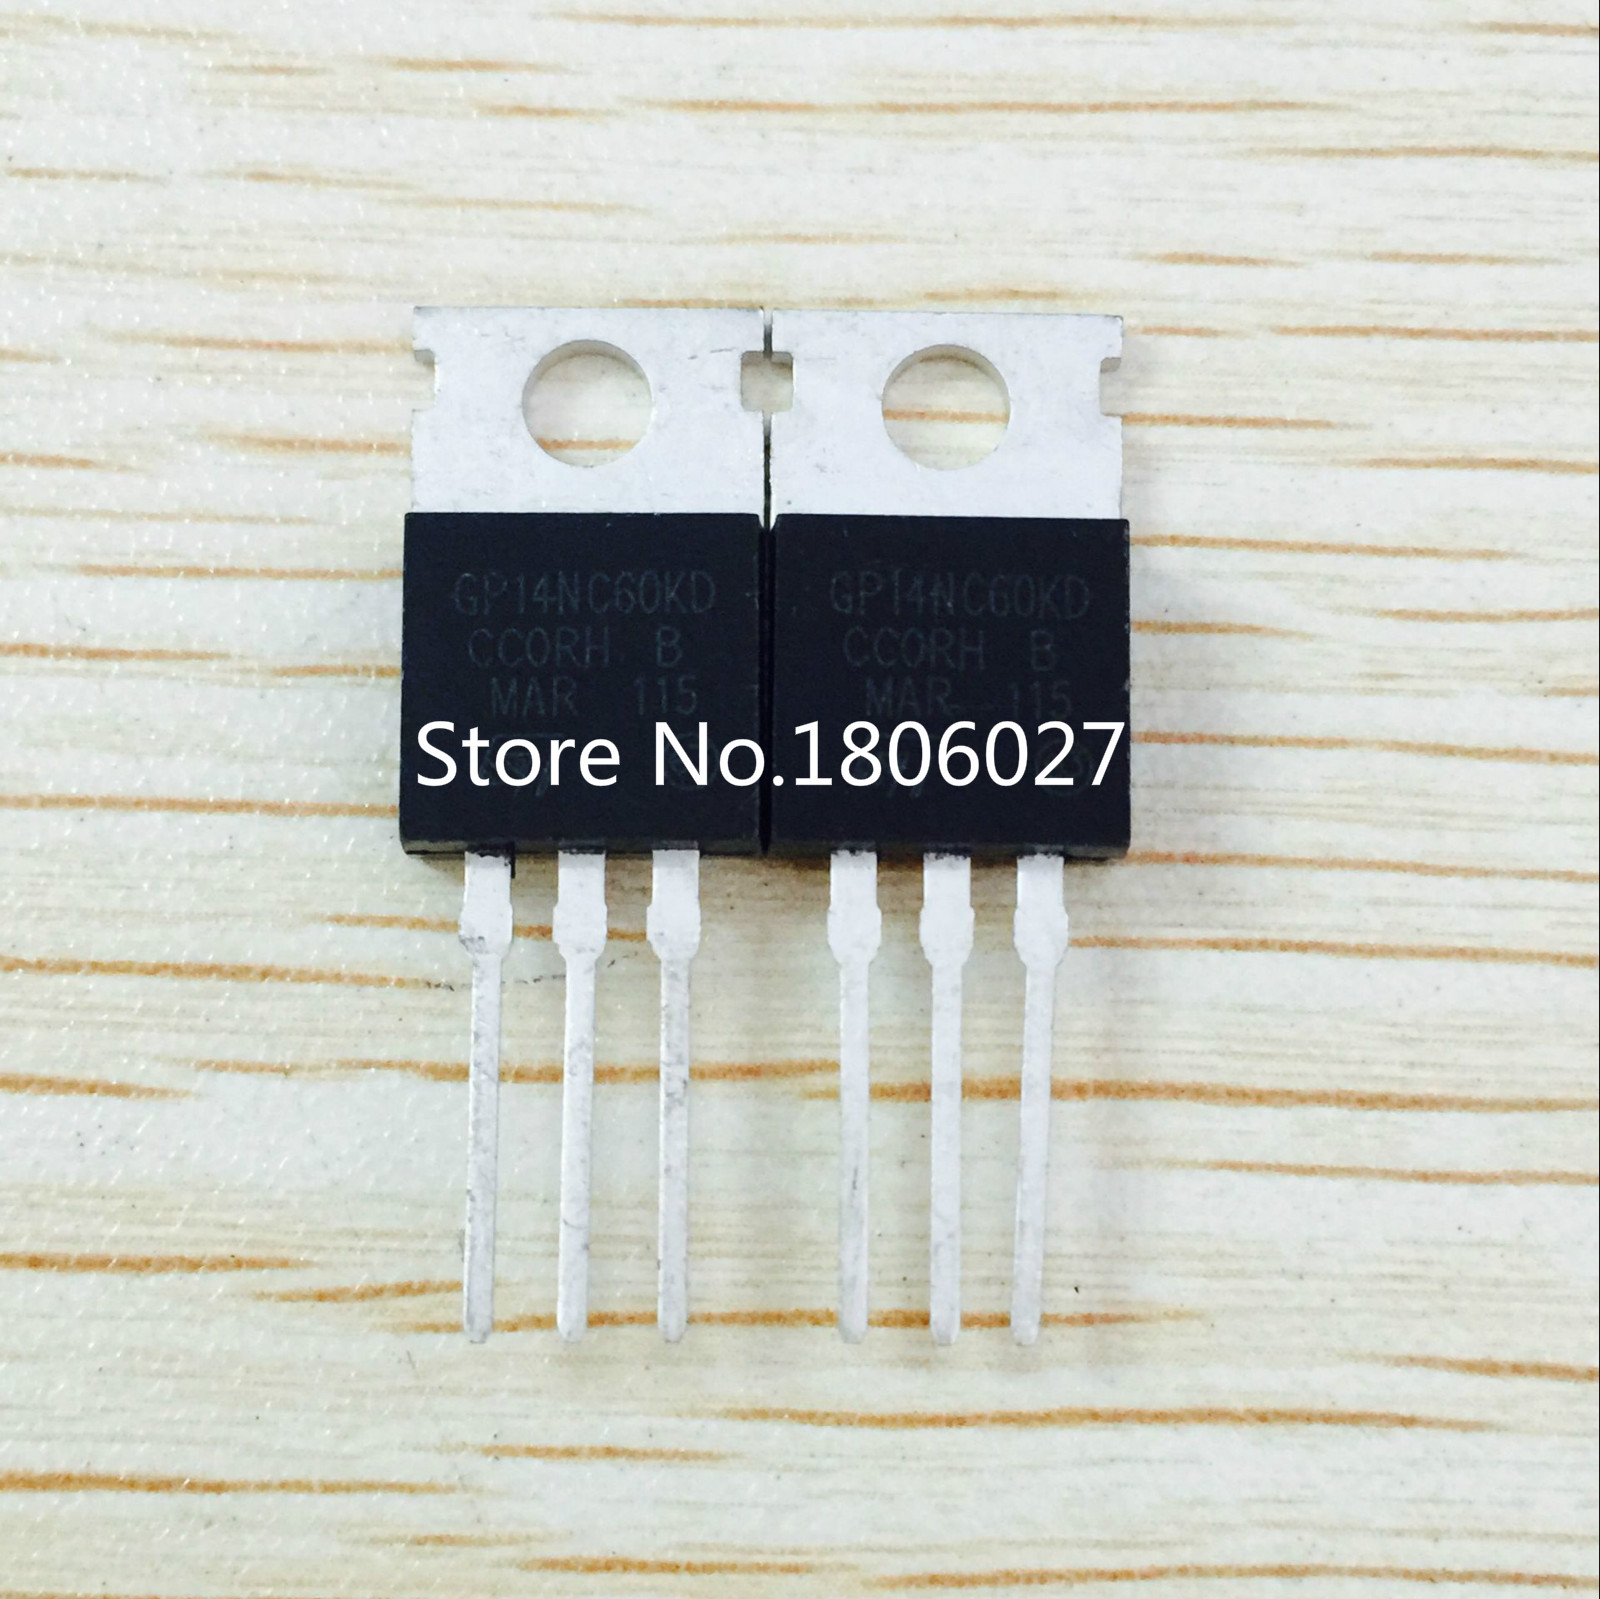 Send Free 20PCS   STGP14NC60KD   GP14NC60KD   TO-220  600V 14A   IGBT Single Pipe